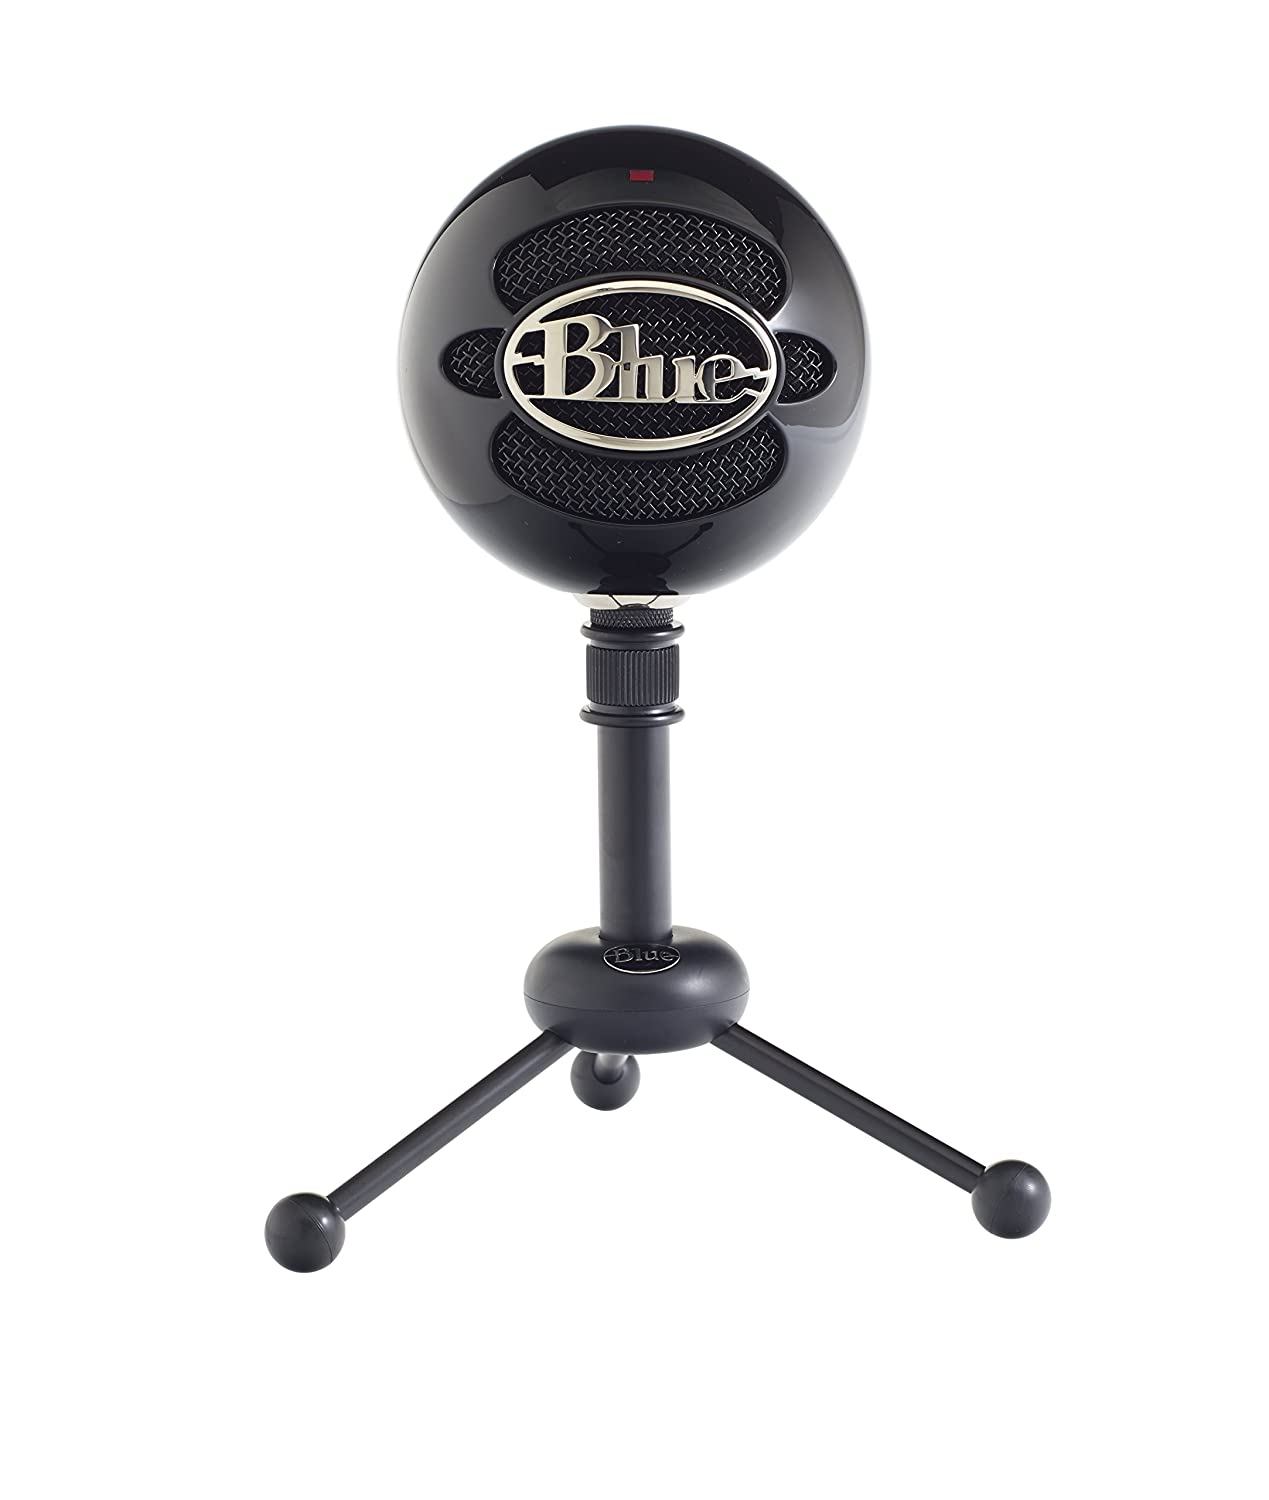 Blue Snowball Usb Microphone Gloss Black Musical Circuit Design Reproduce Sound Signals Captured Through A Instruments